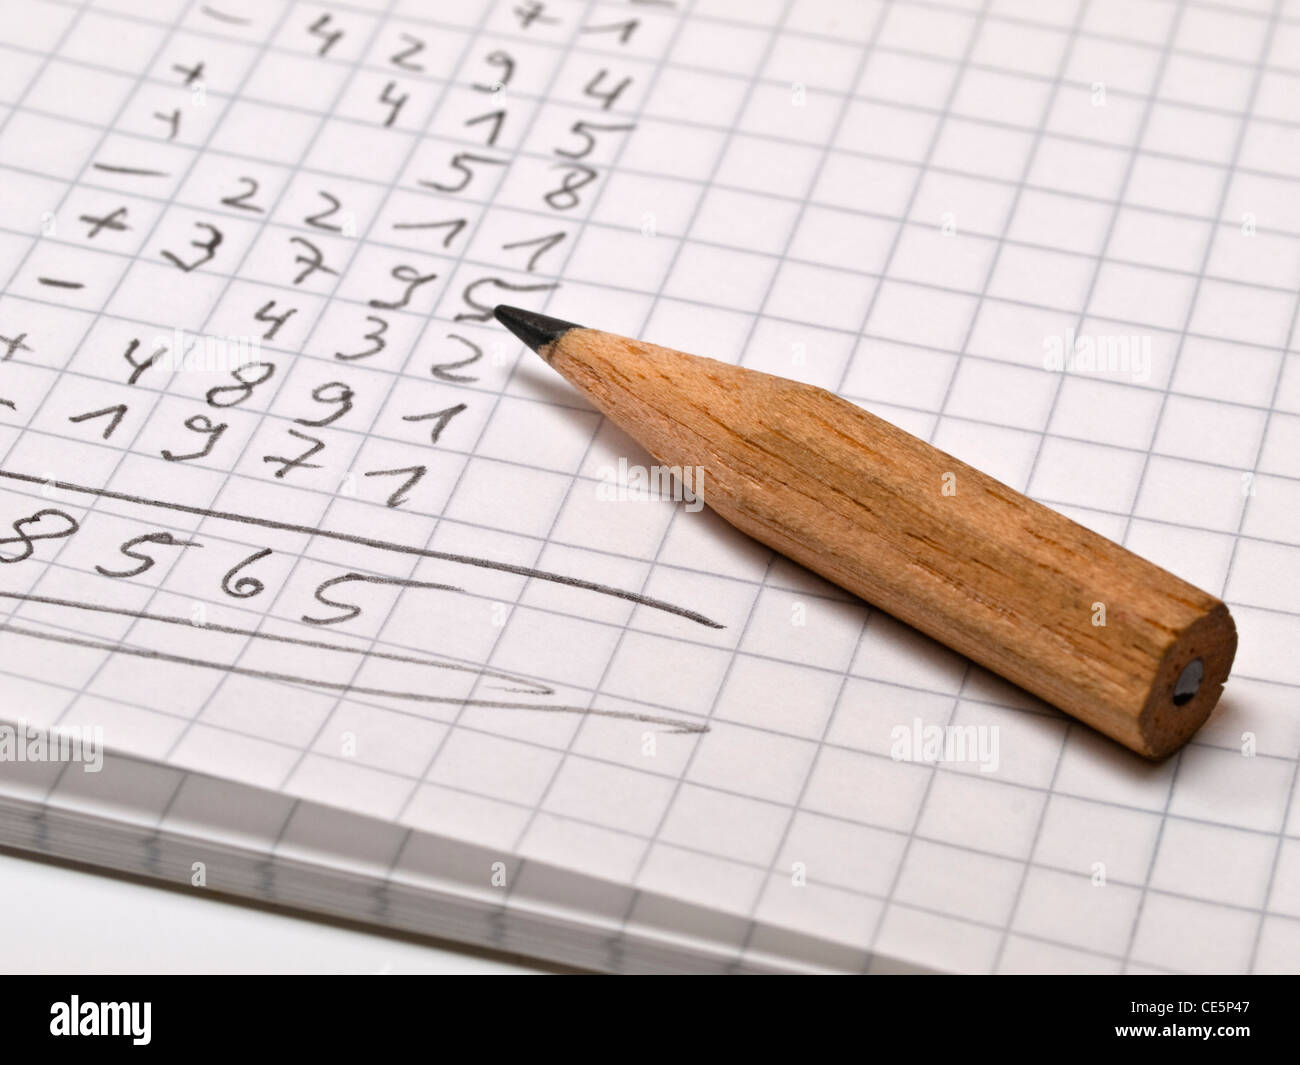 a checked memo pad with a long sequence of numbers, beside is a small pencil - Stock Image